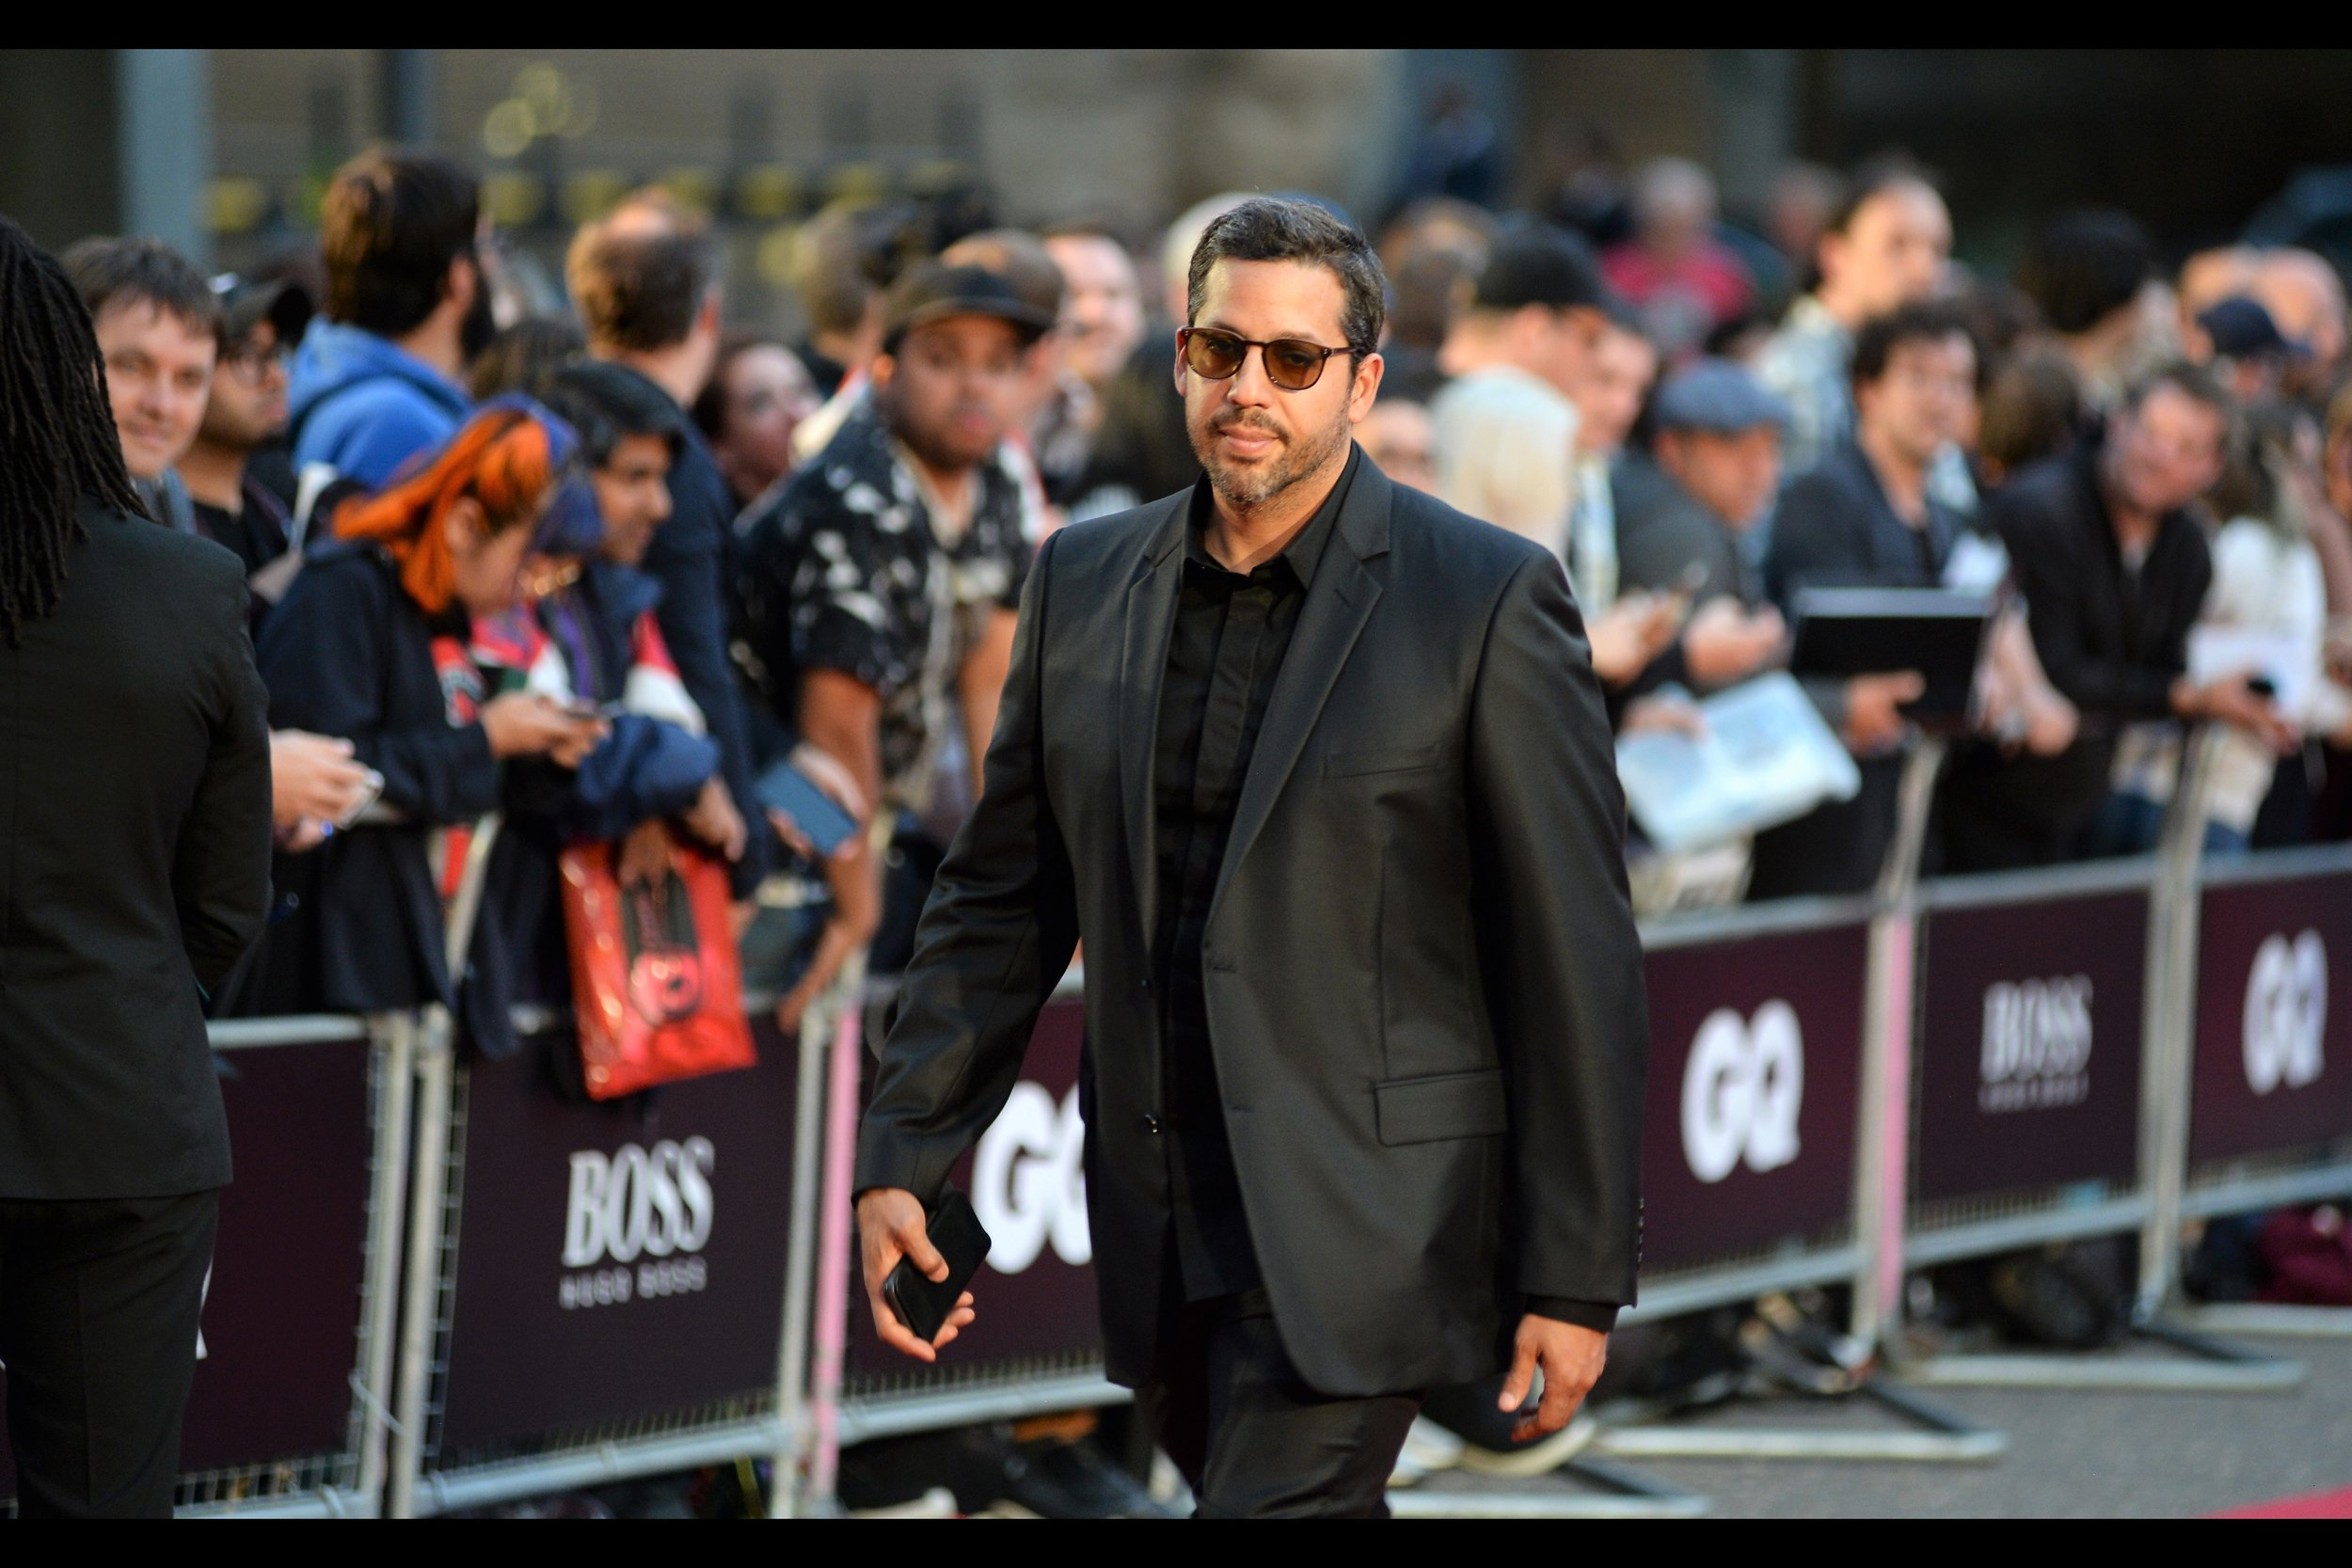 And when the time comes that a magician walks the carpet at the GQ Awards, it's a sign that it's time for me to disappear. (nb. he's David Blaine)